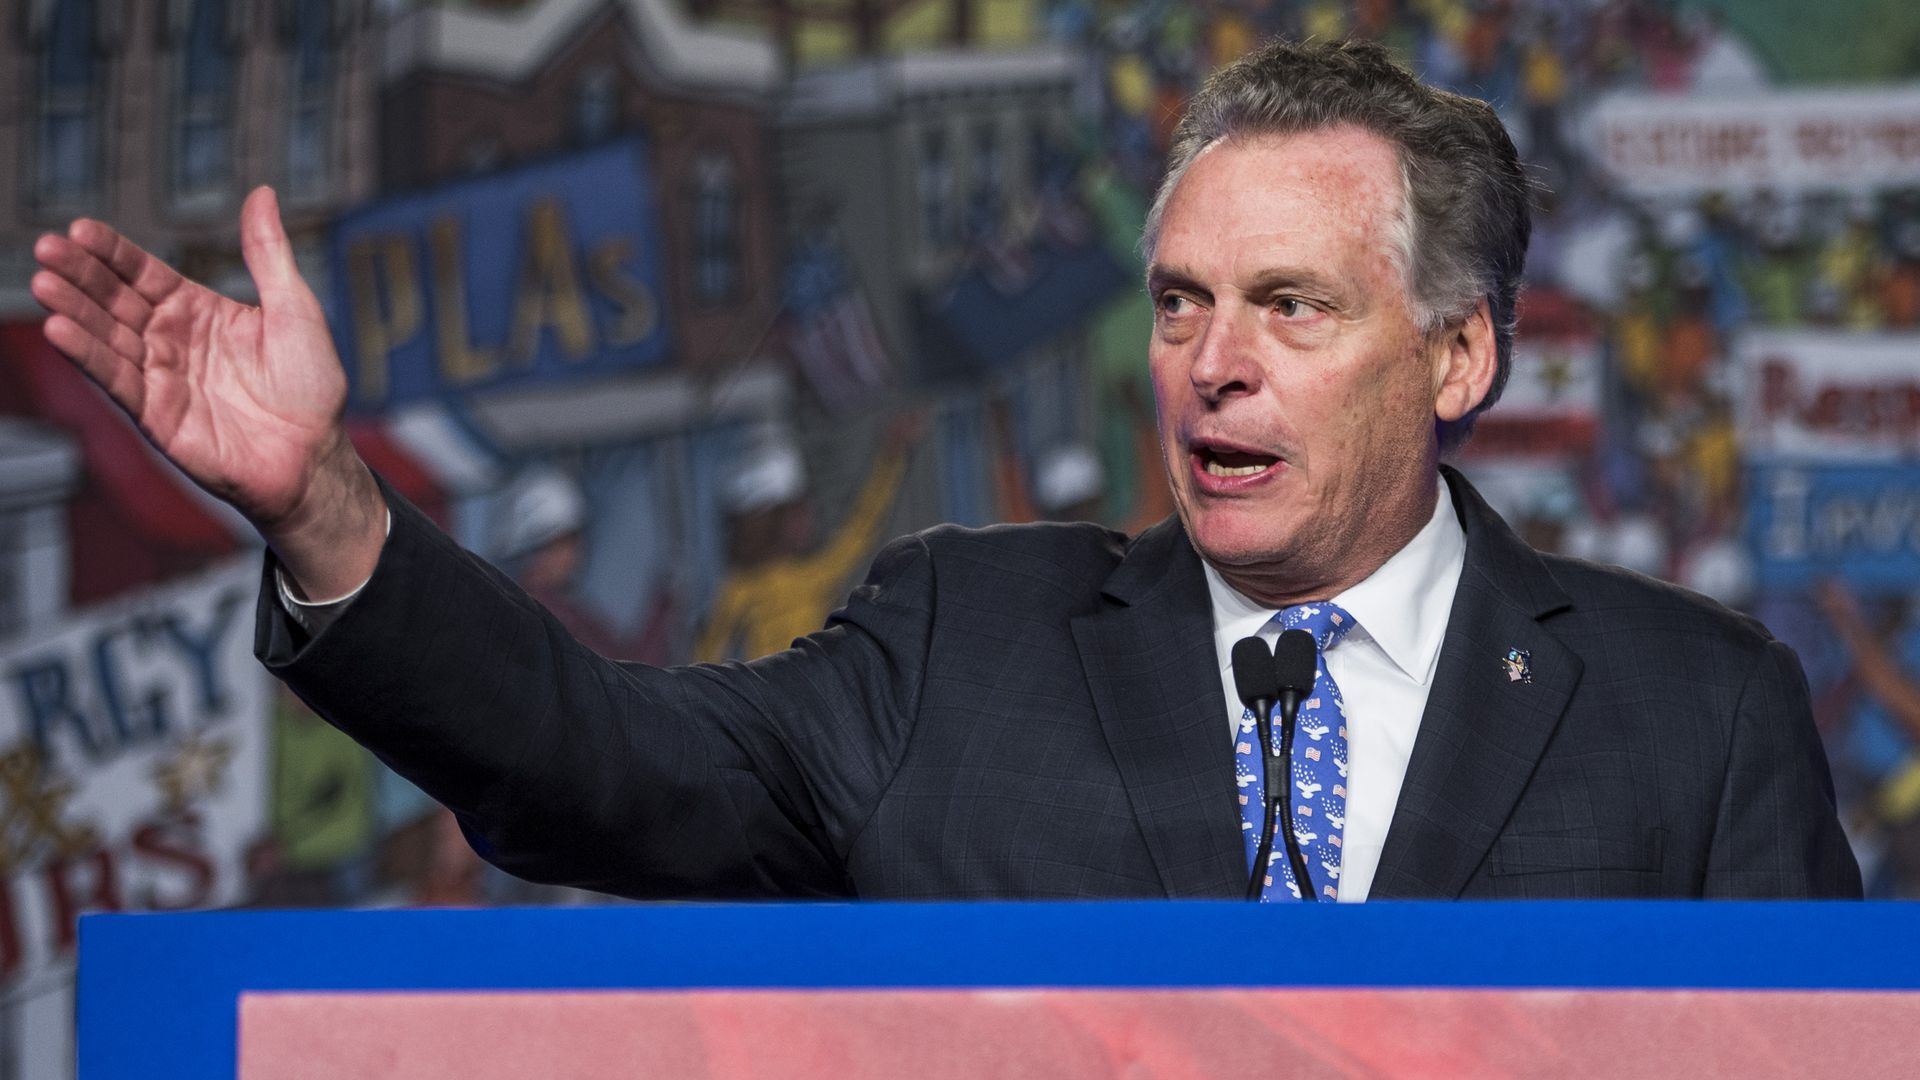 In this image, McAuliffe stands and gestures at a podium while speaking.